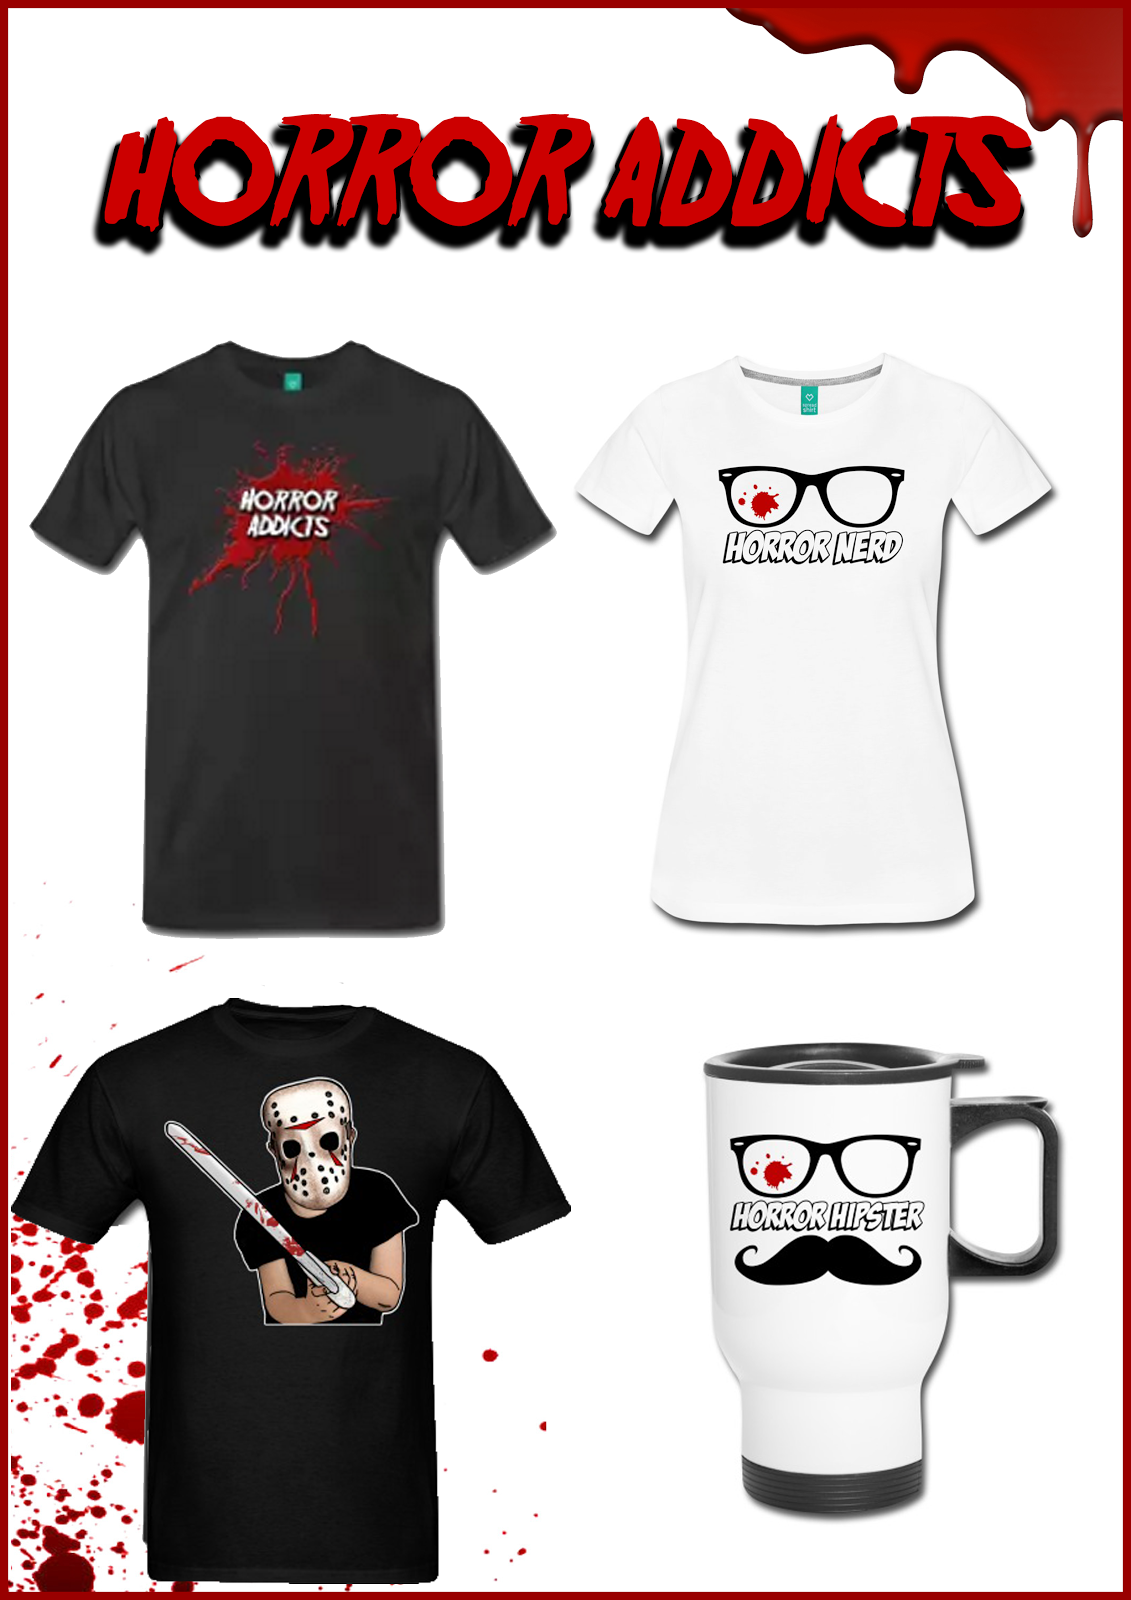 HORROR ADDICTS Merch